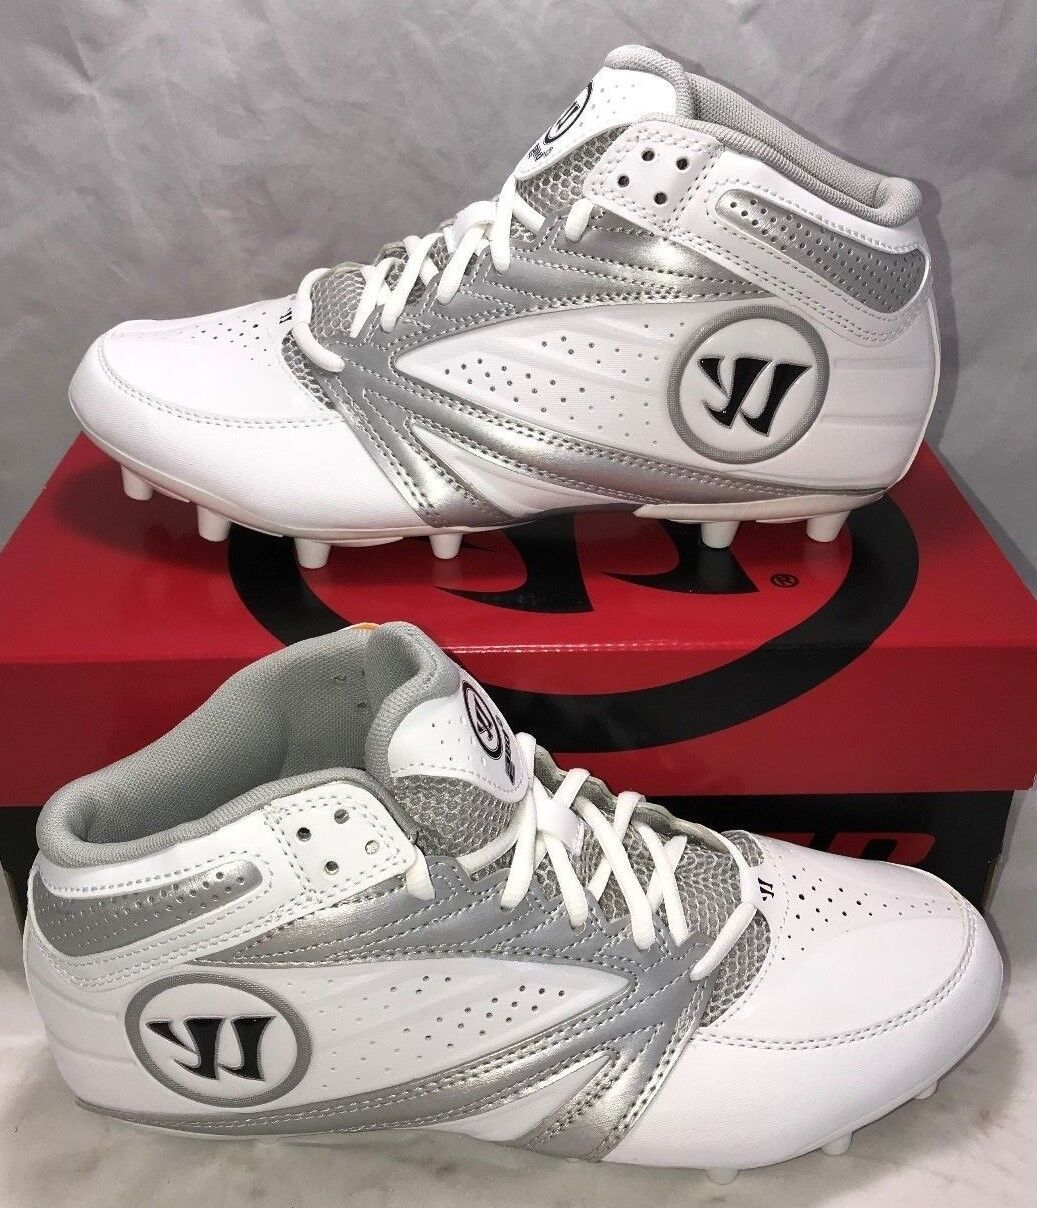 Warrior Mens Size 11 Second Degree 3.0 Lacrosse Lax Cleats White Silver